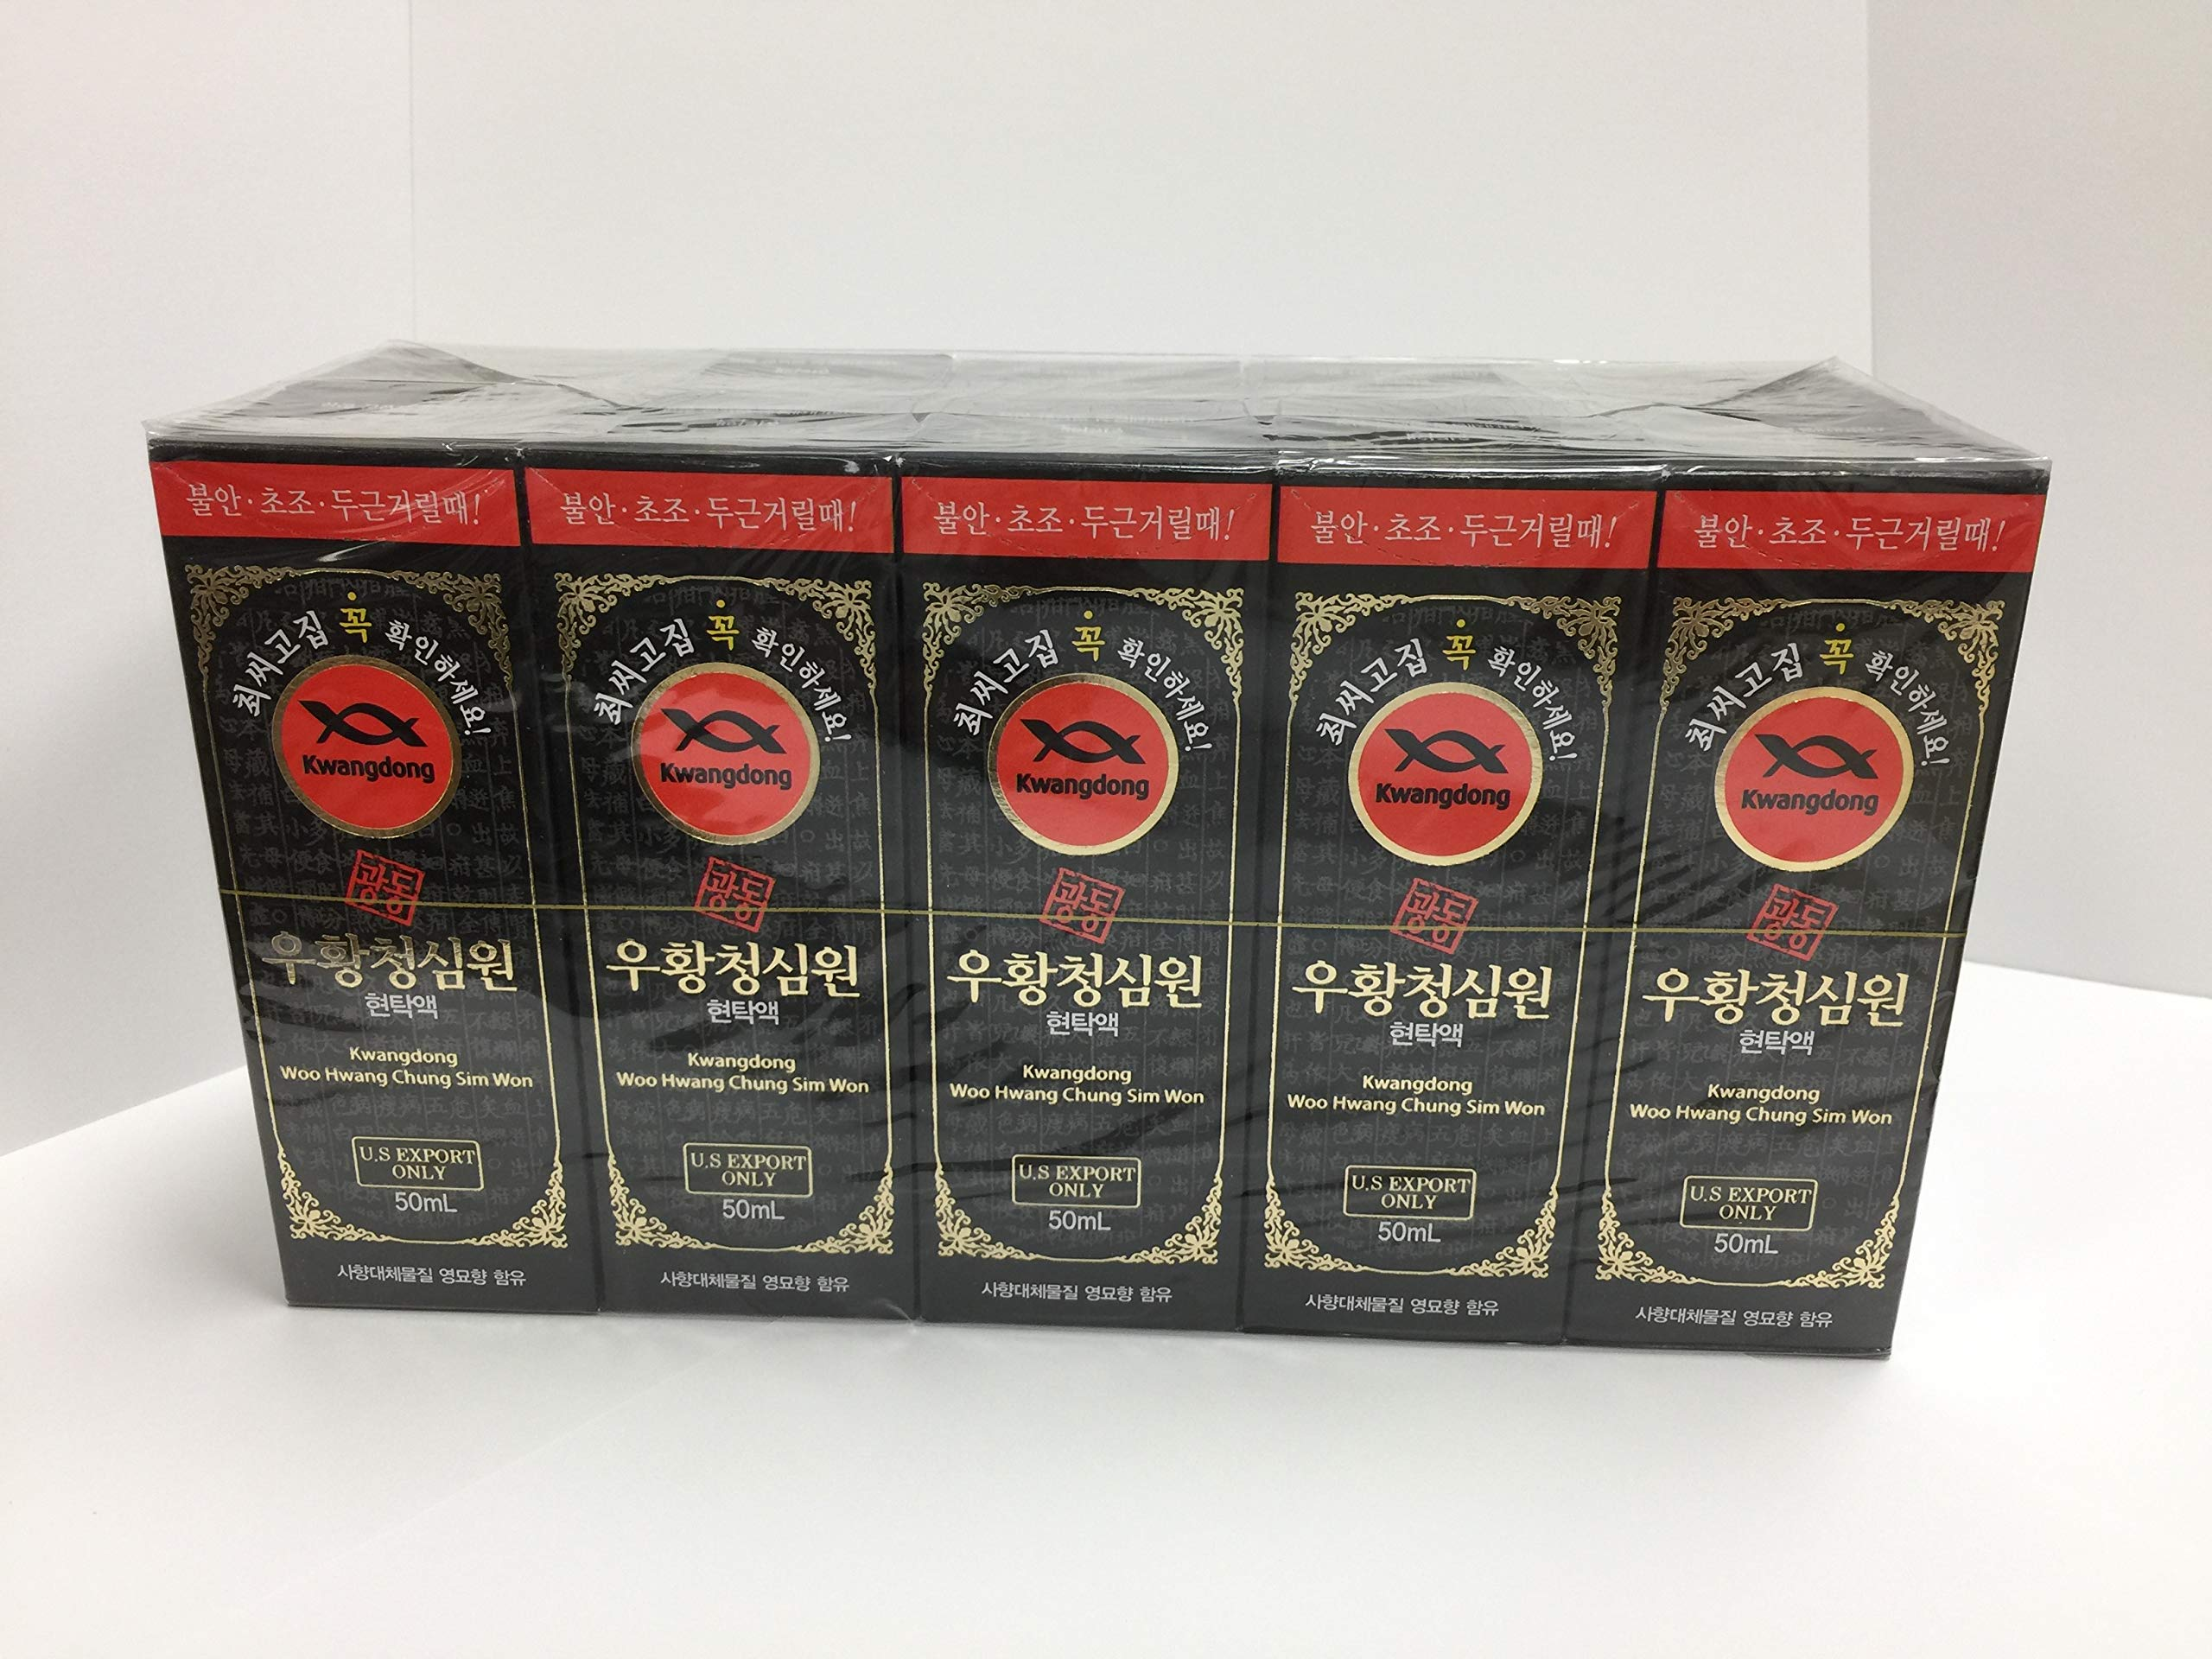 KwangDong- Woo Hwang Chung Sim Won - Liquid Herb Extracts Concentration -10 Count/Pack by KwangDong (CGM Labs)